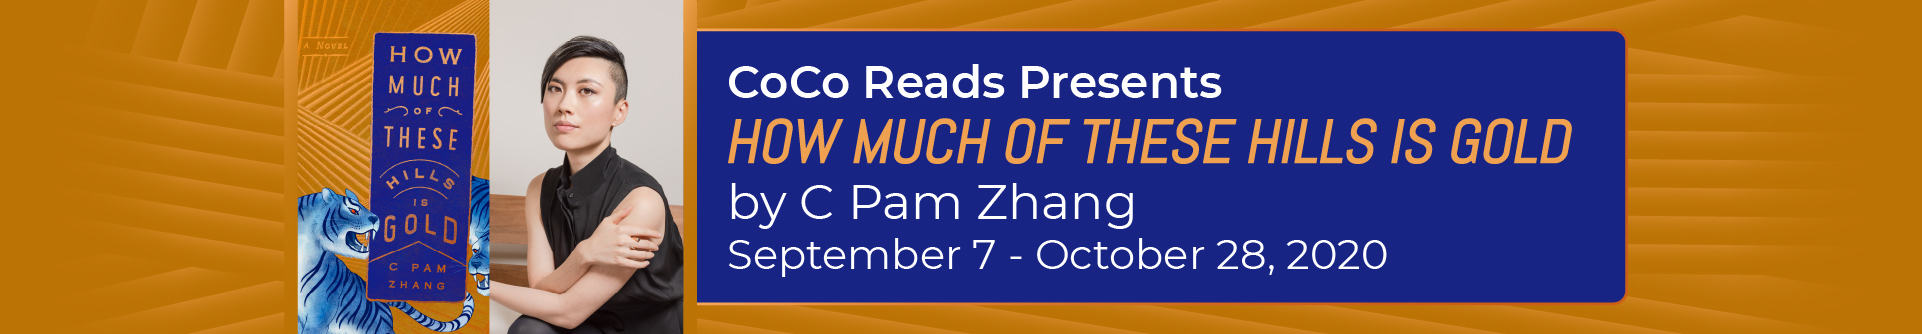 BAN-CoCoReads-Zhang-2021D